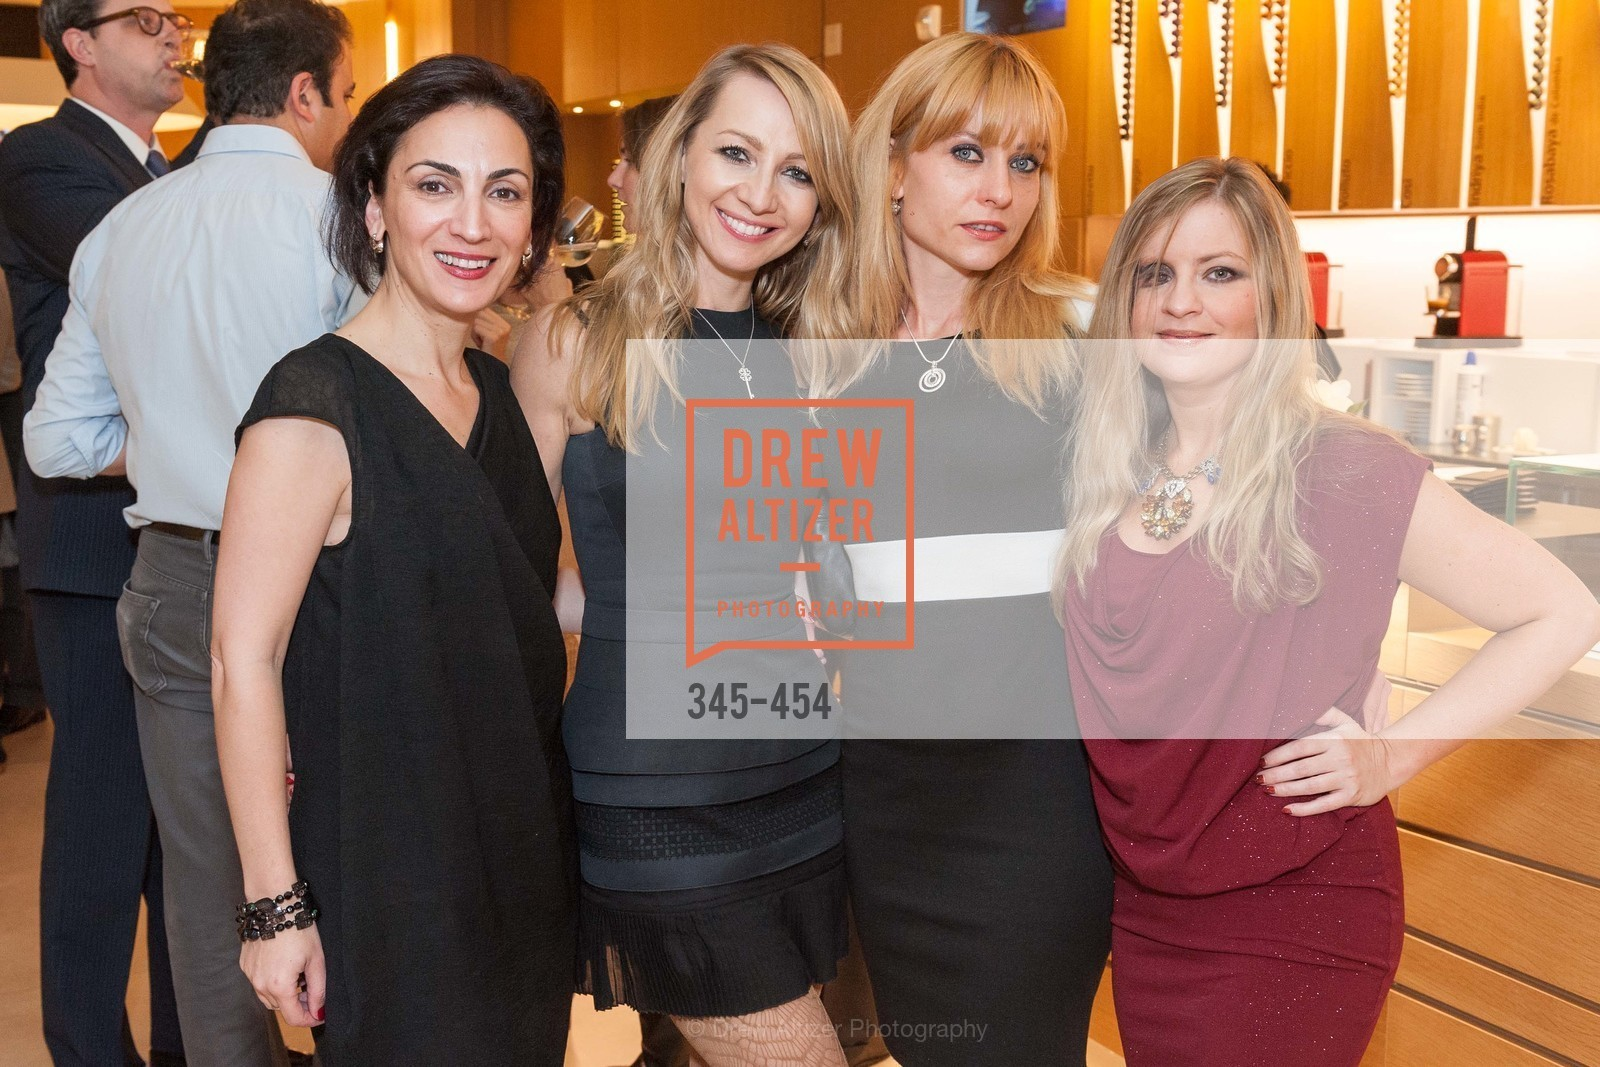 Irina Bragin, Lana Ricketts, Irina Kondratenko, Julie Hall, 2014 SAN FRANCISCO BALLET ENCORE! Kick-Off Party, US. Nespresso Boutique Bar, 90 Grant Avenue, January 7th, 2014,Drew Altizer, Drew Altizer Photography, full-service agency, private events, San Francisco photographer, photographer california